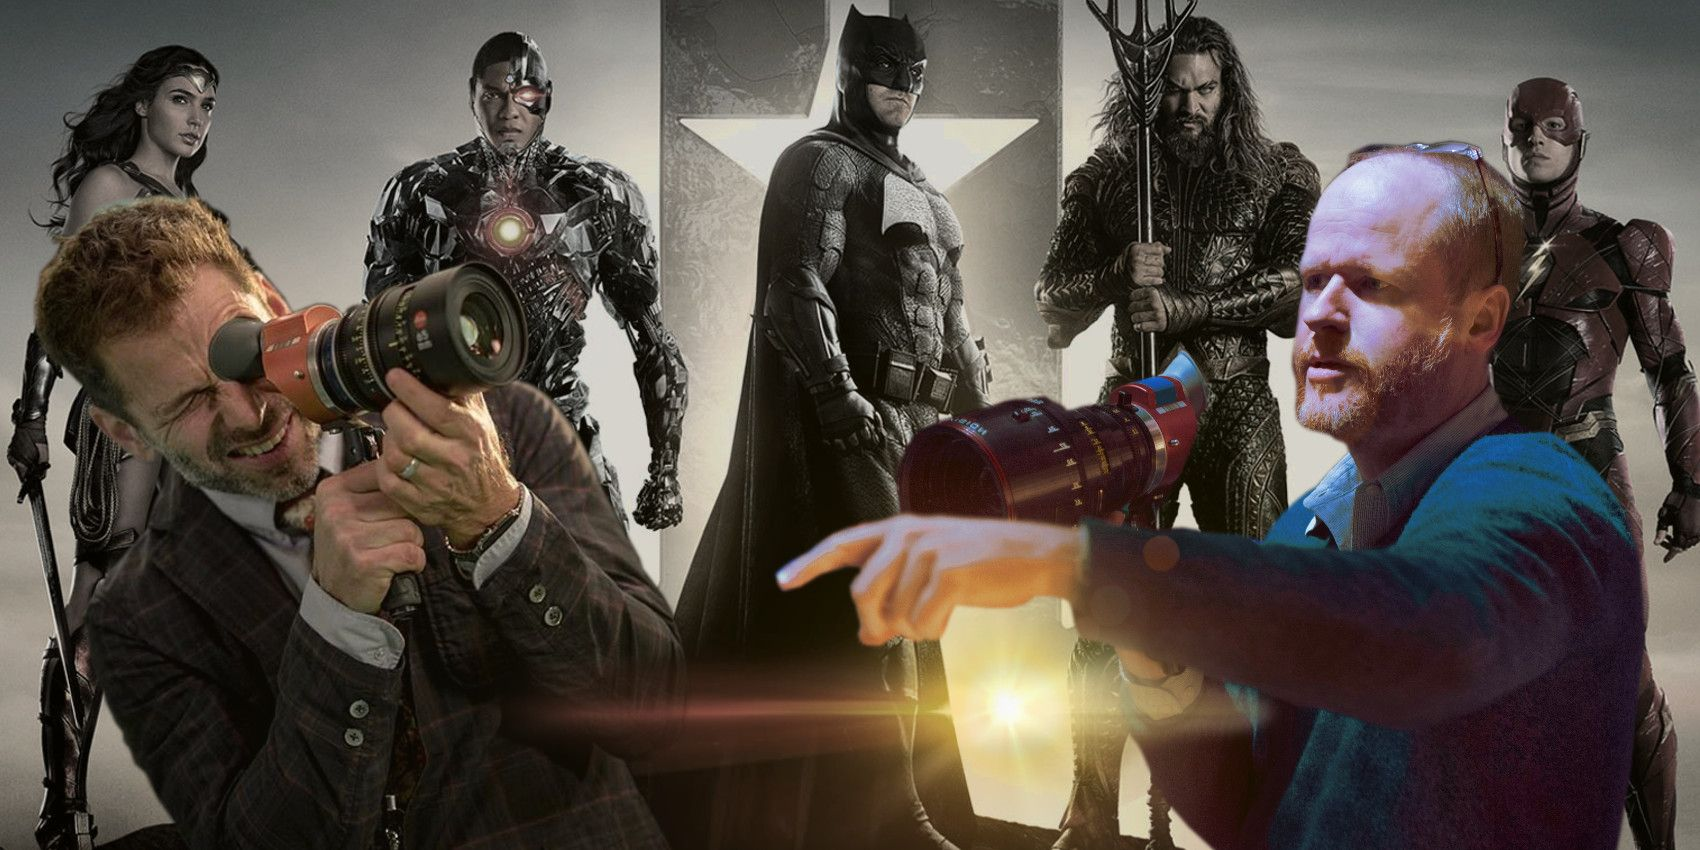 Justice-League-Reshoots-Zack-Snyder-Joss-Whedon